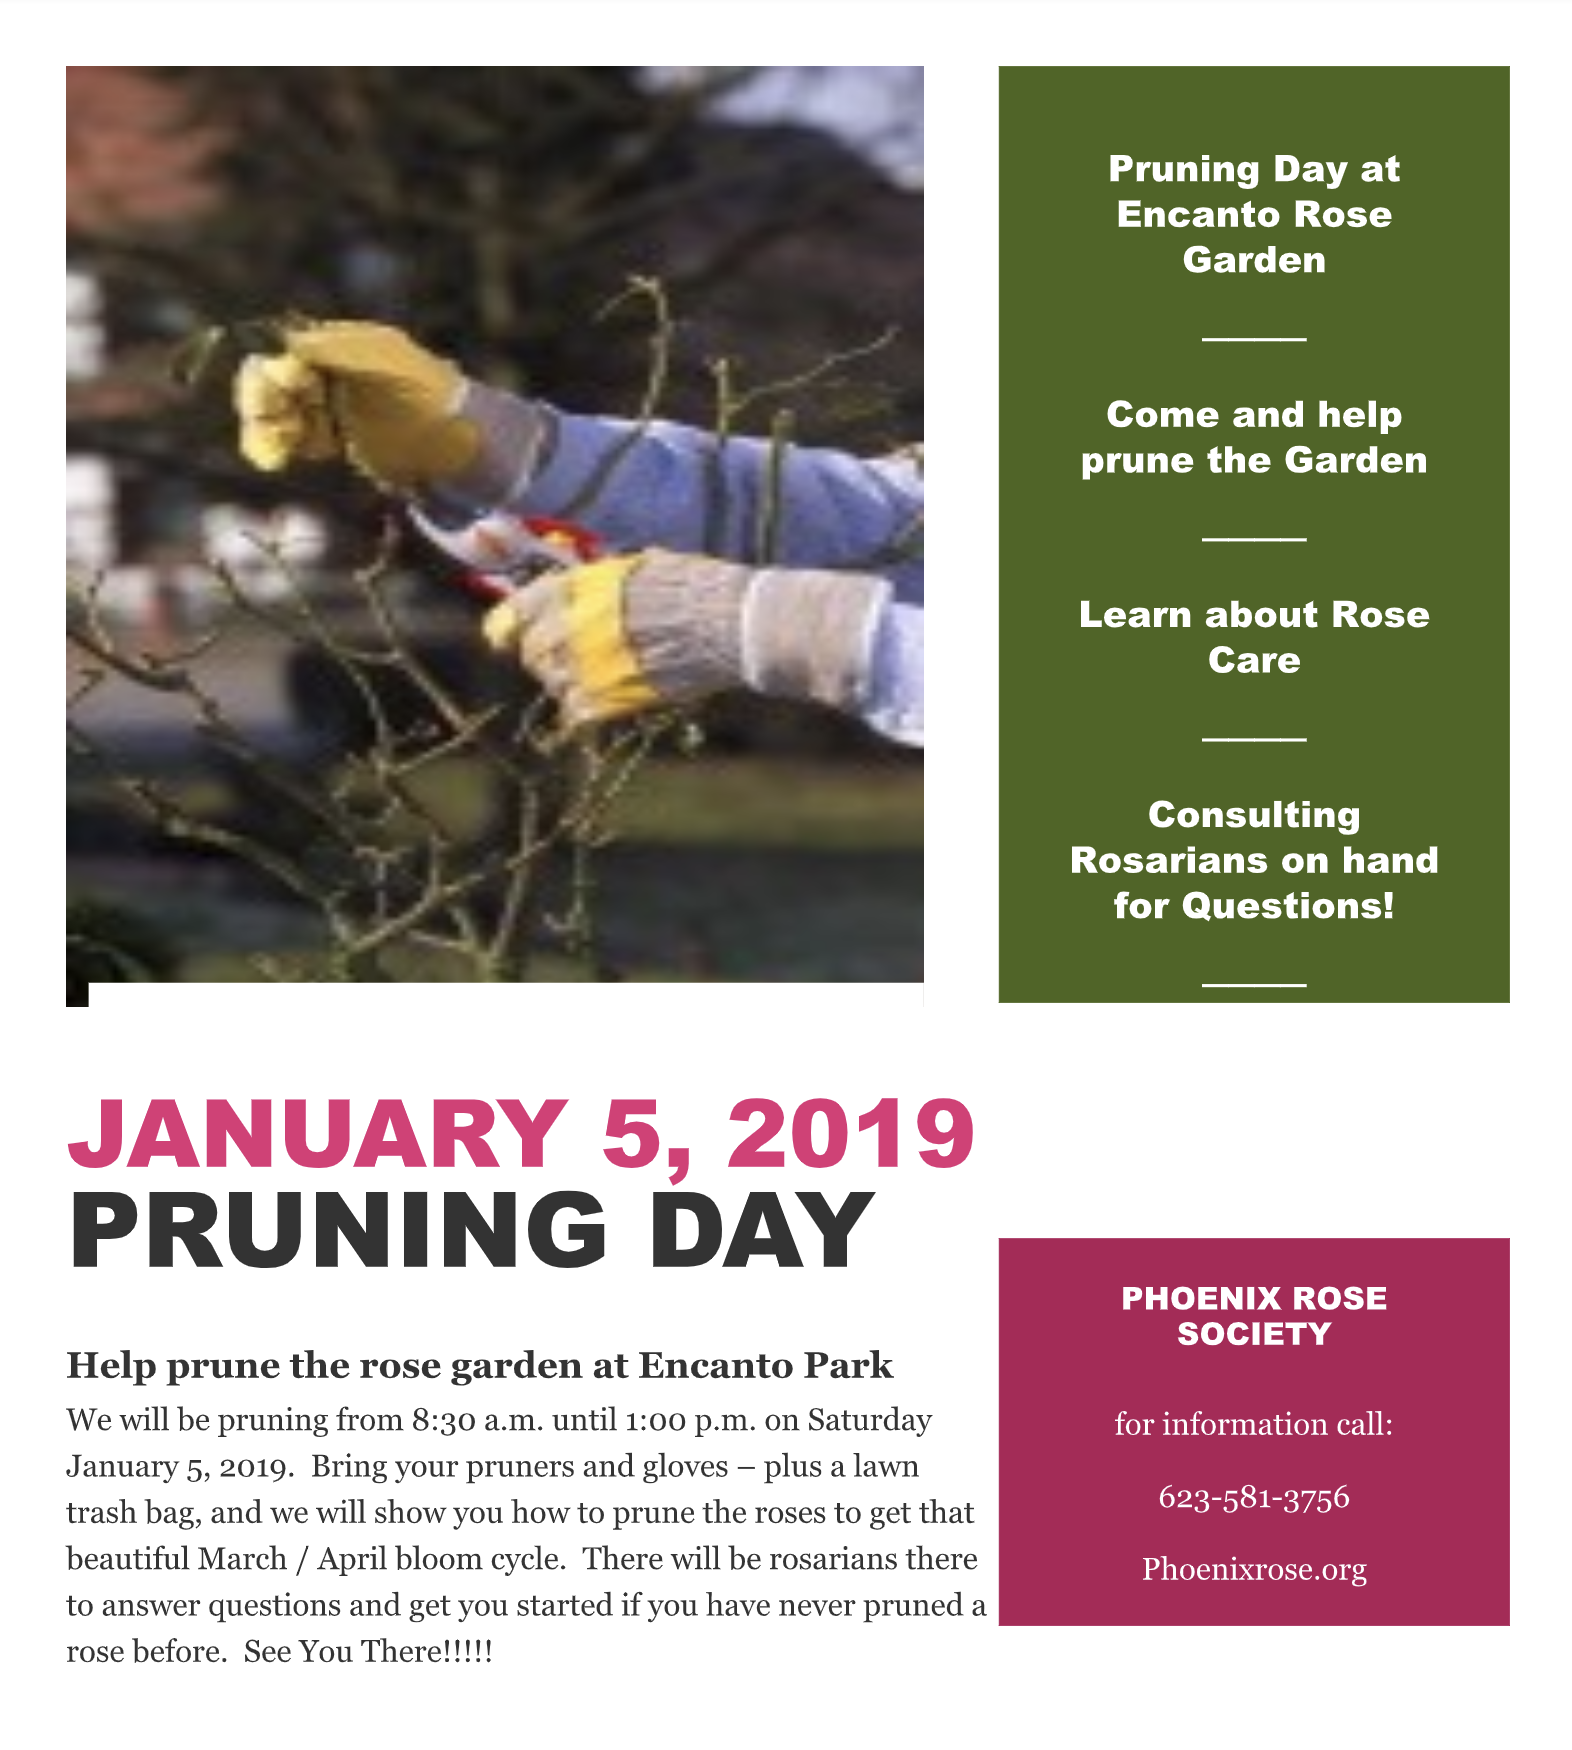 Pruning Day 2019 Valley Garden Center Phoenix.png